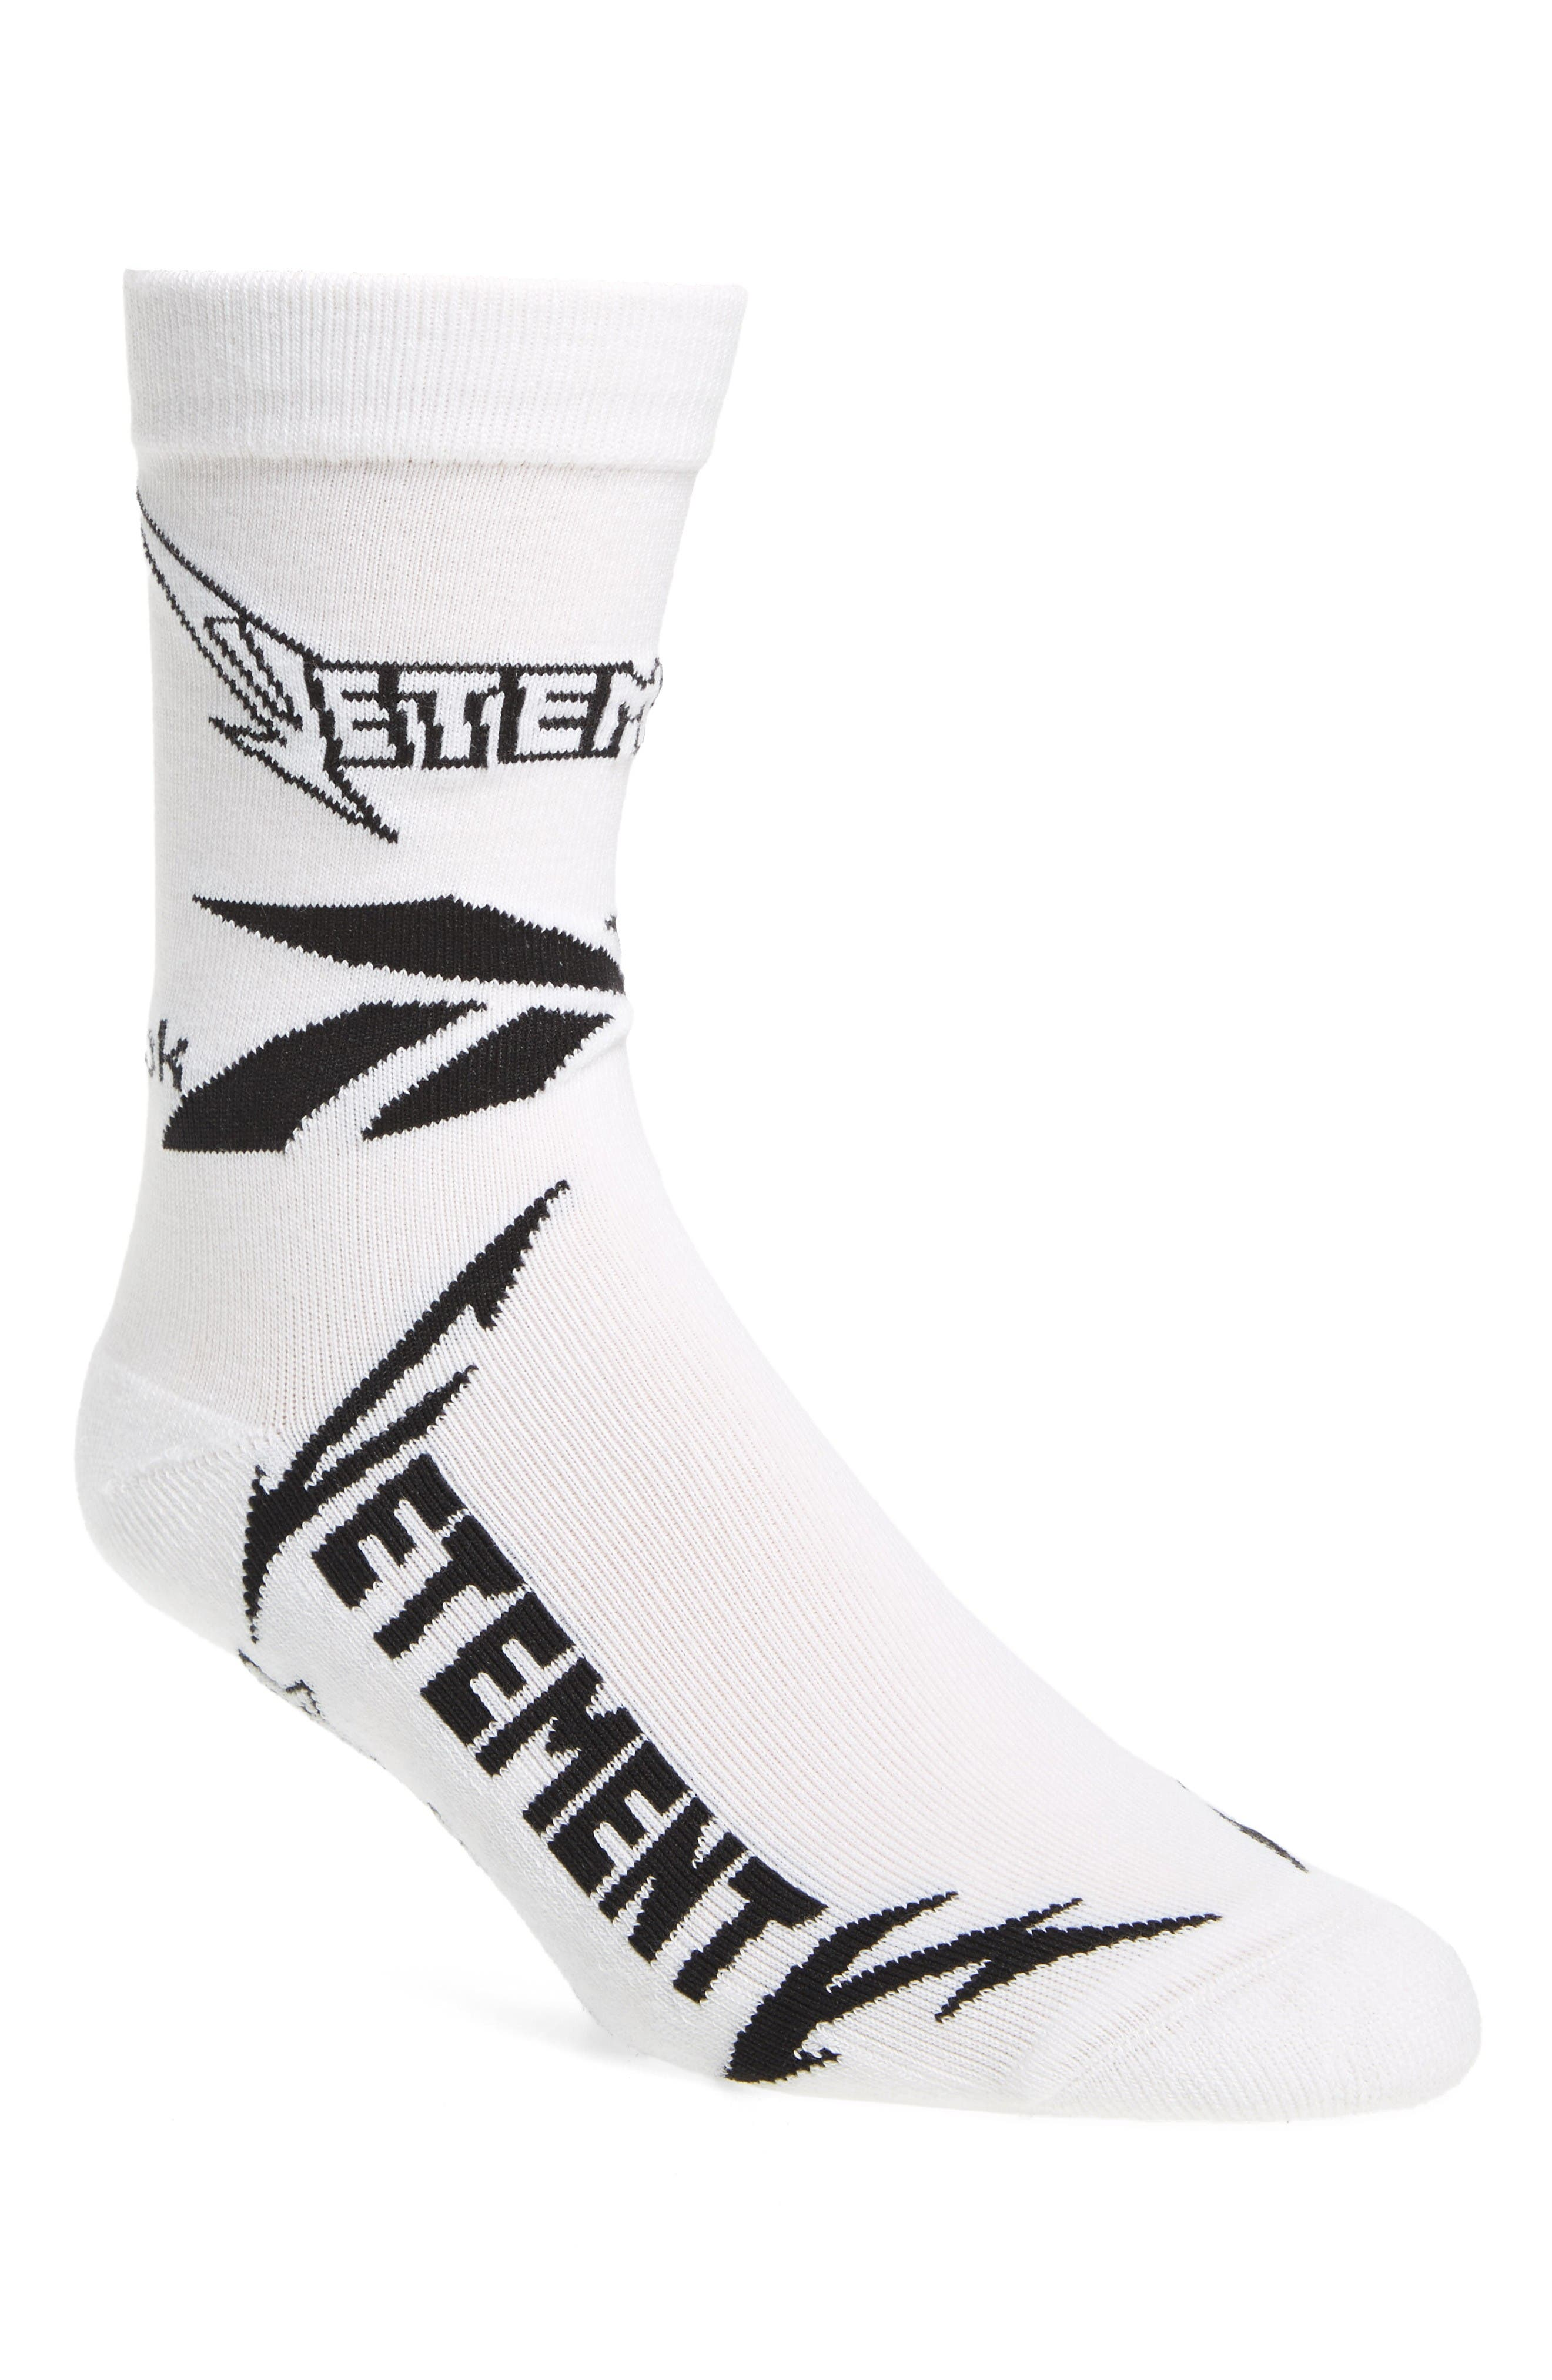 Metal Crew Socks,                             Main thumbnail 1, color,                             White